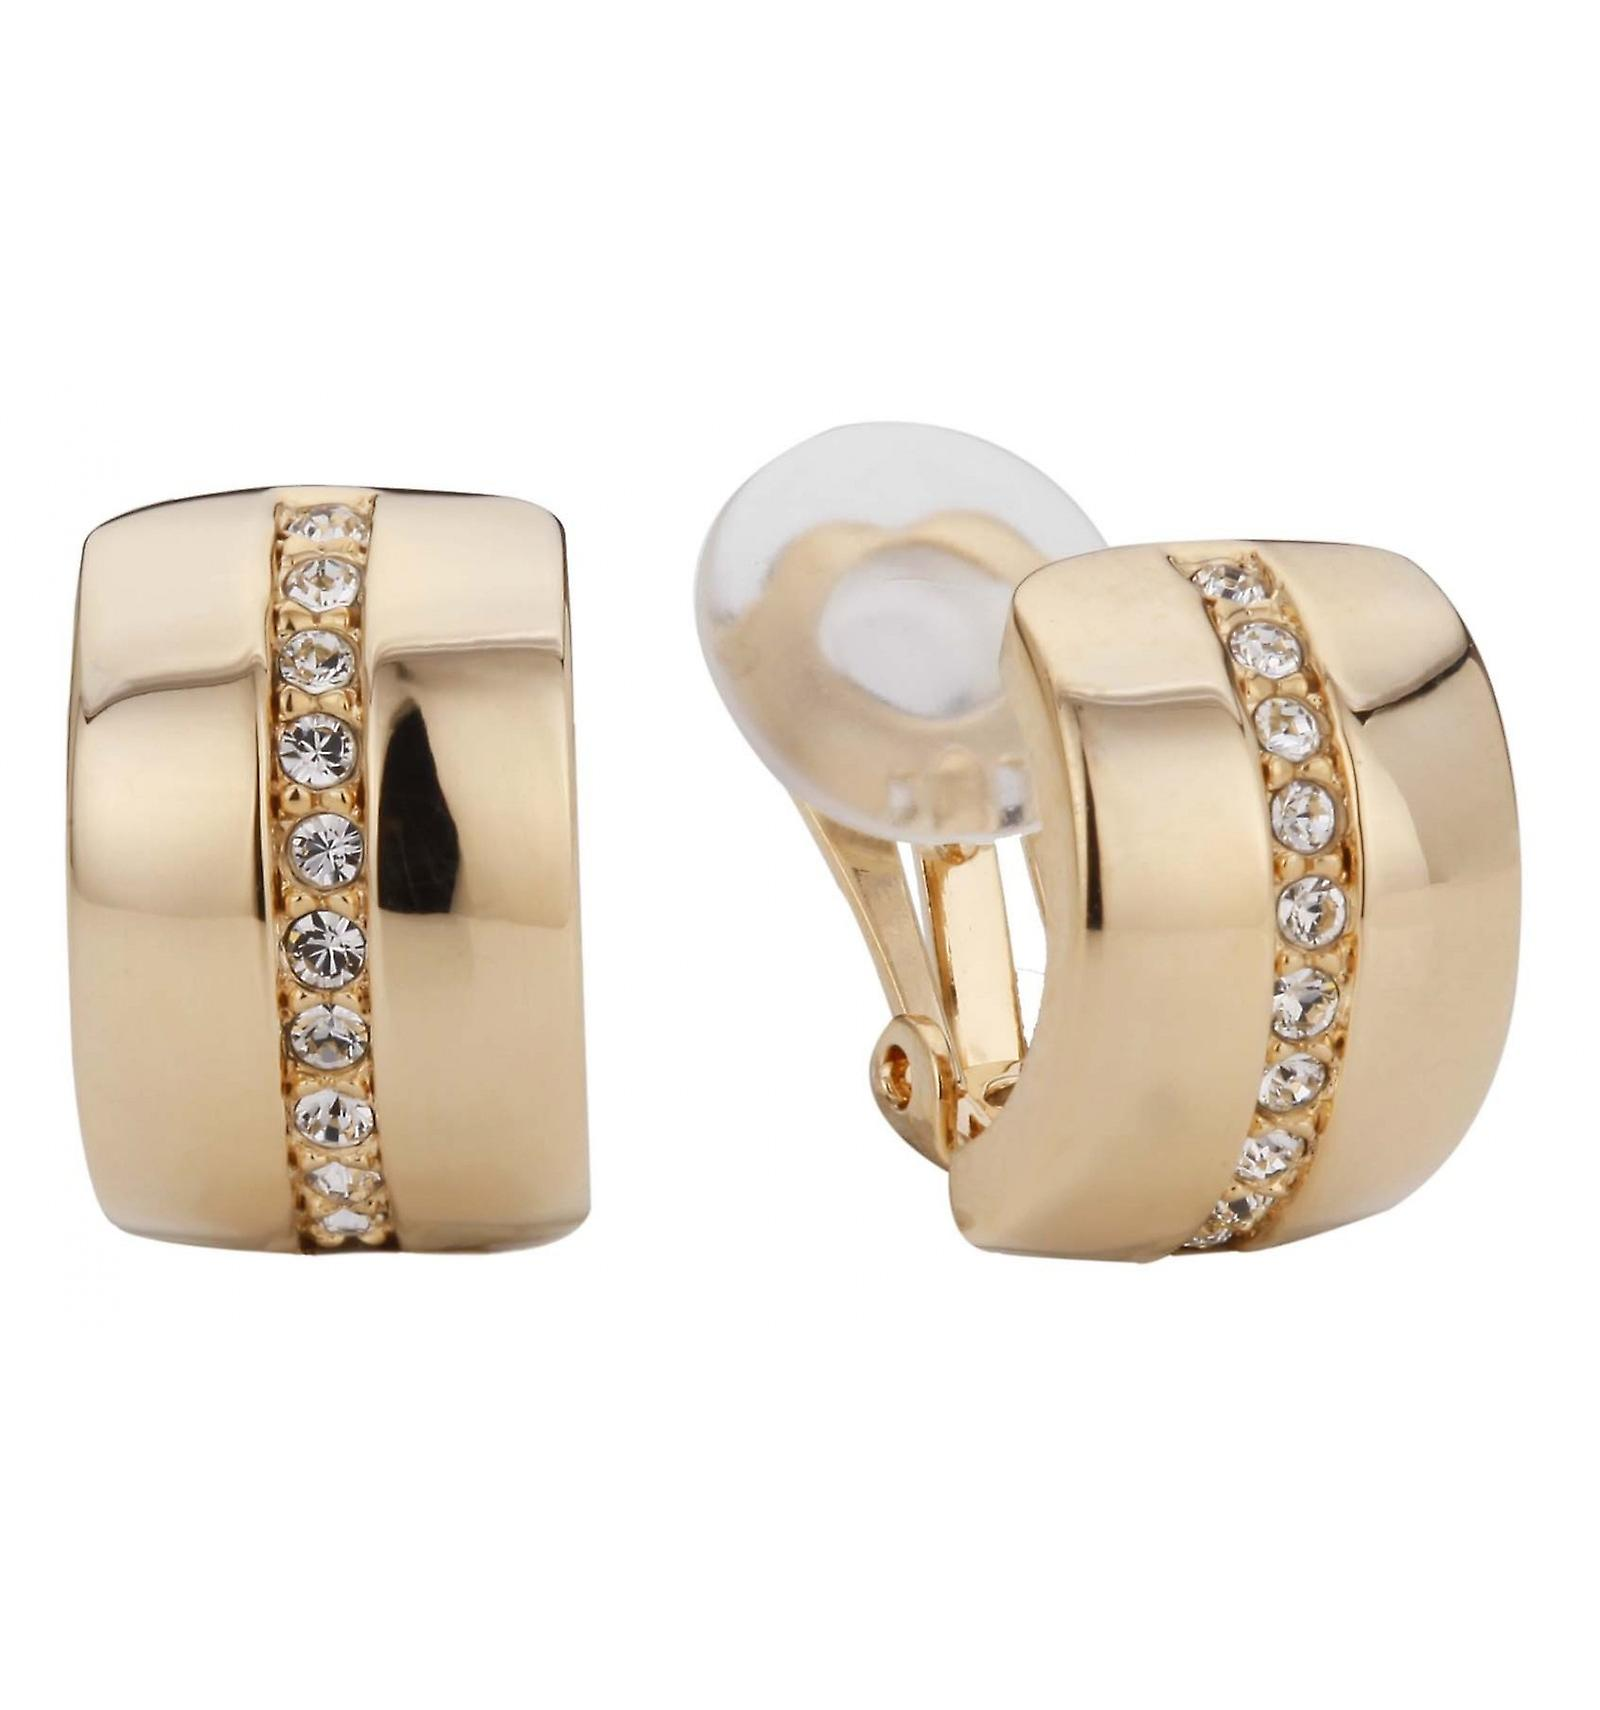 Traveller clip earring - 22ct gold plated - Swarovski Crystals - 156591